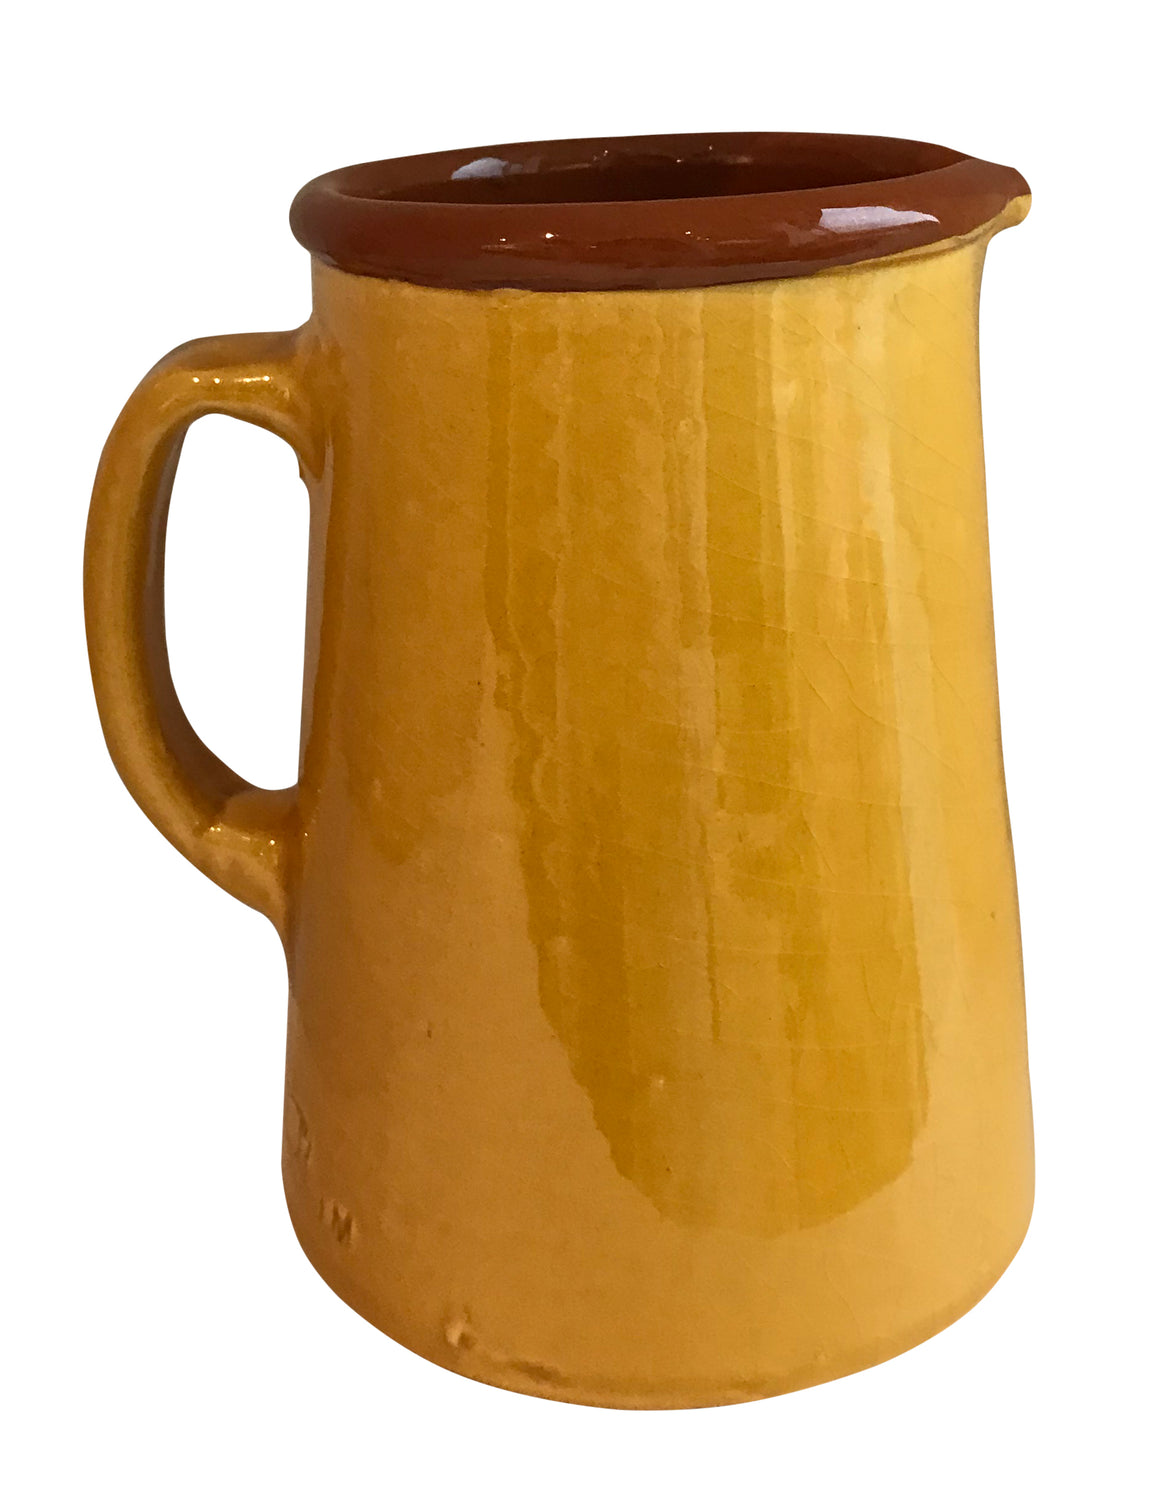 From the region of Catalonia, Spain comes this beautiful, authentic Spanish jug in Mustard